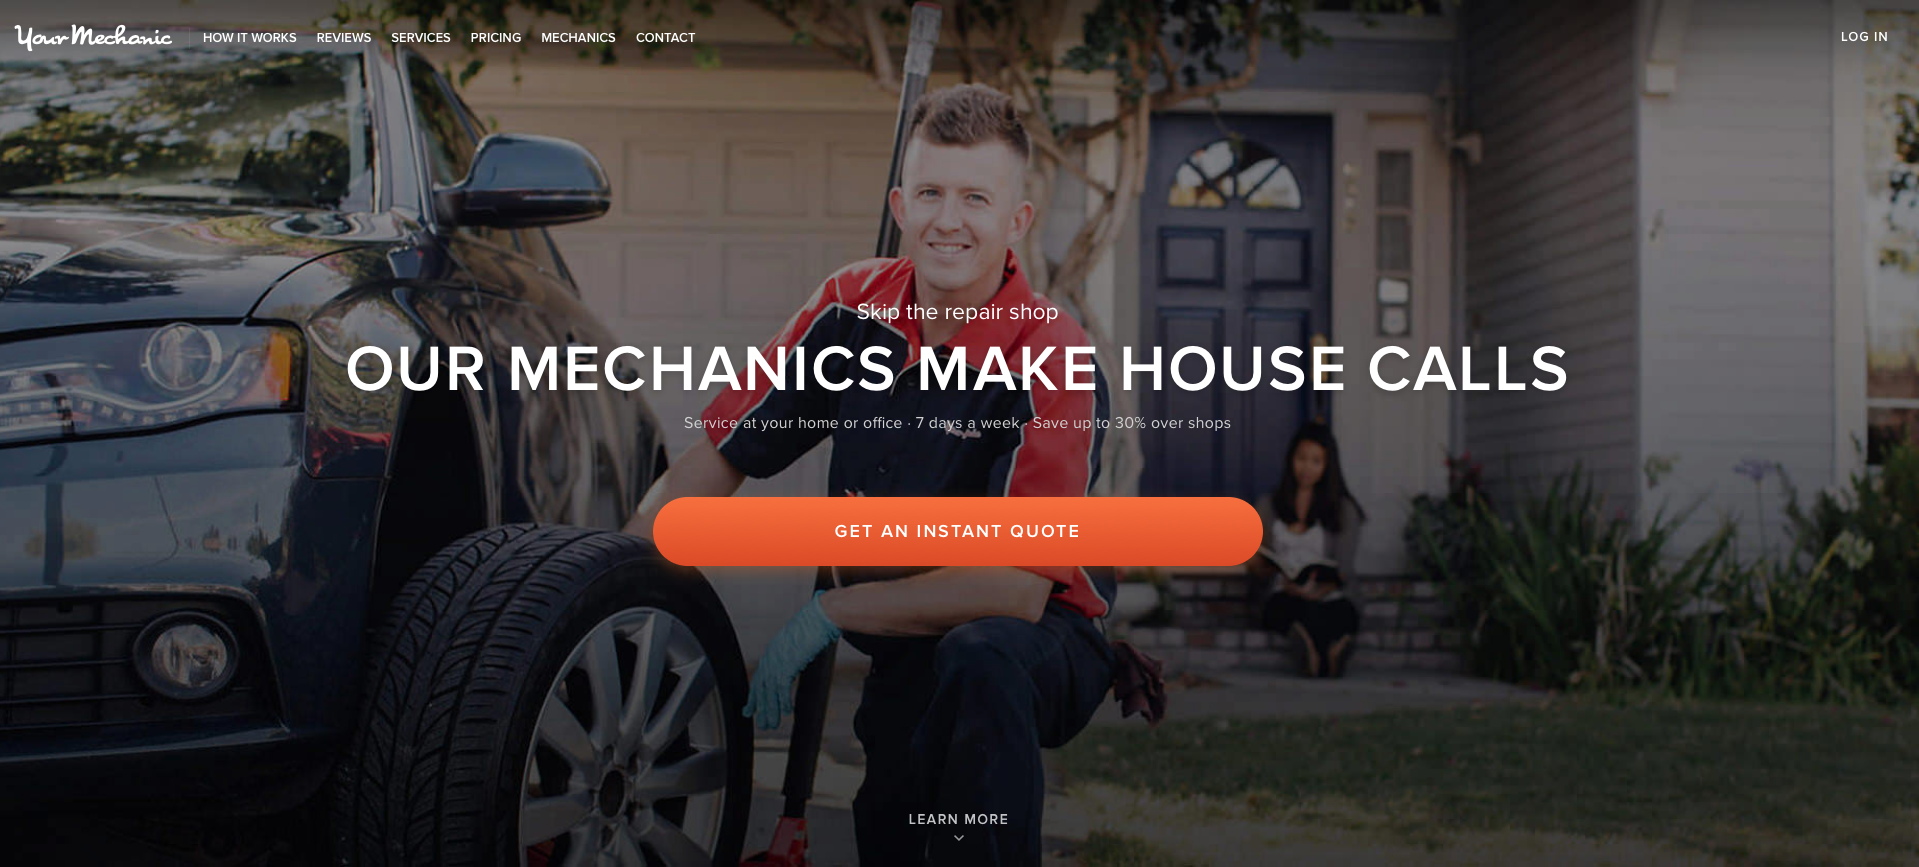 YourMechanic Services Inc. Website Homepage